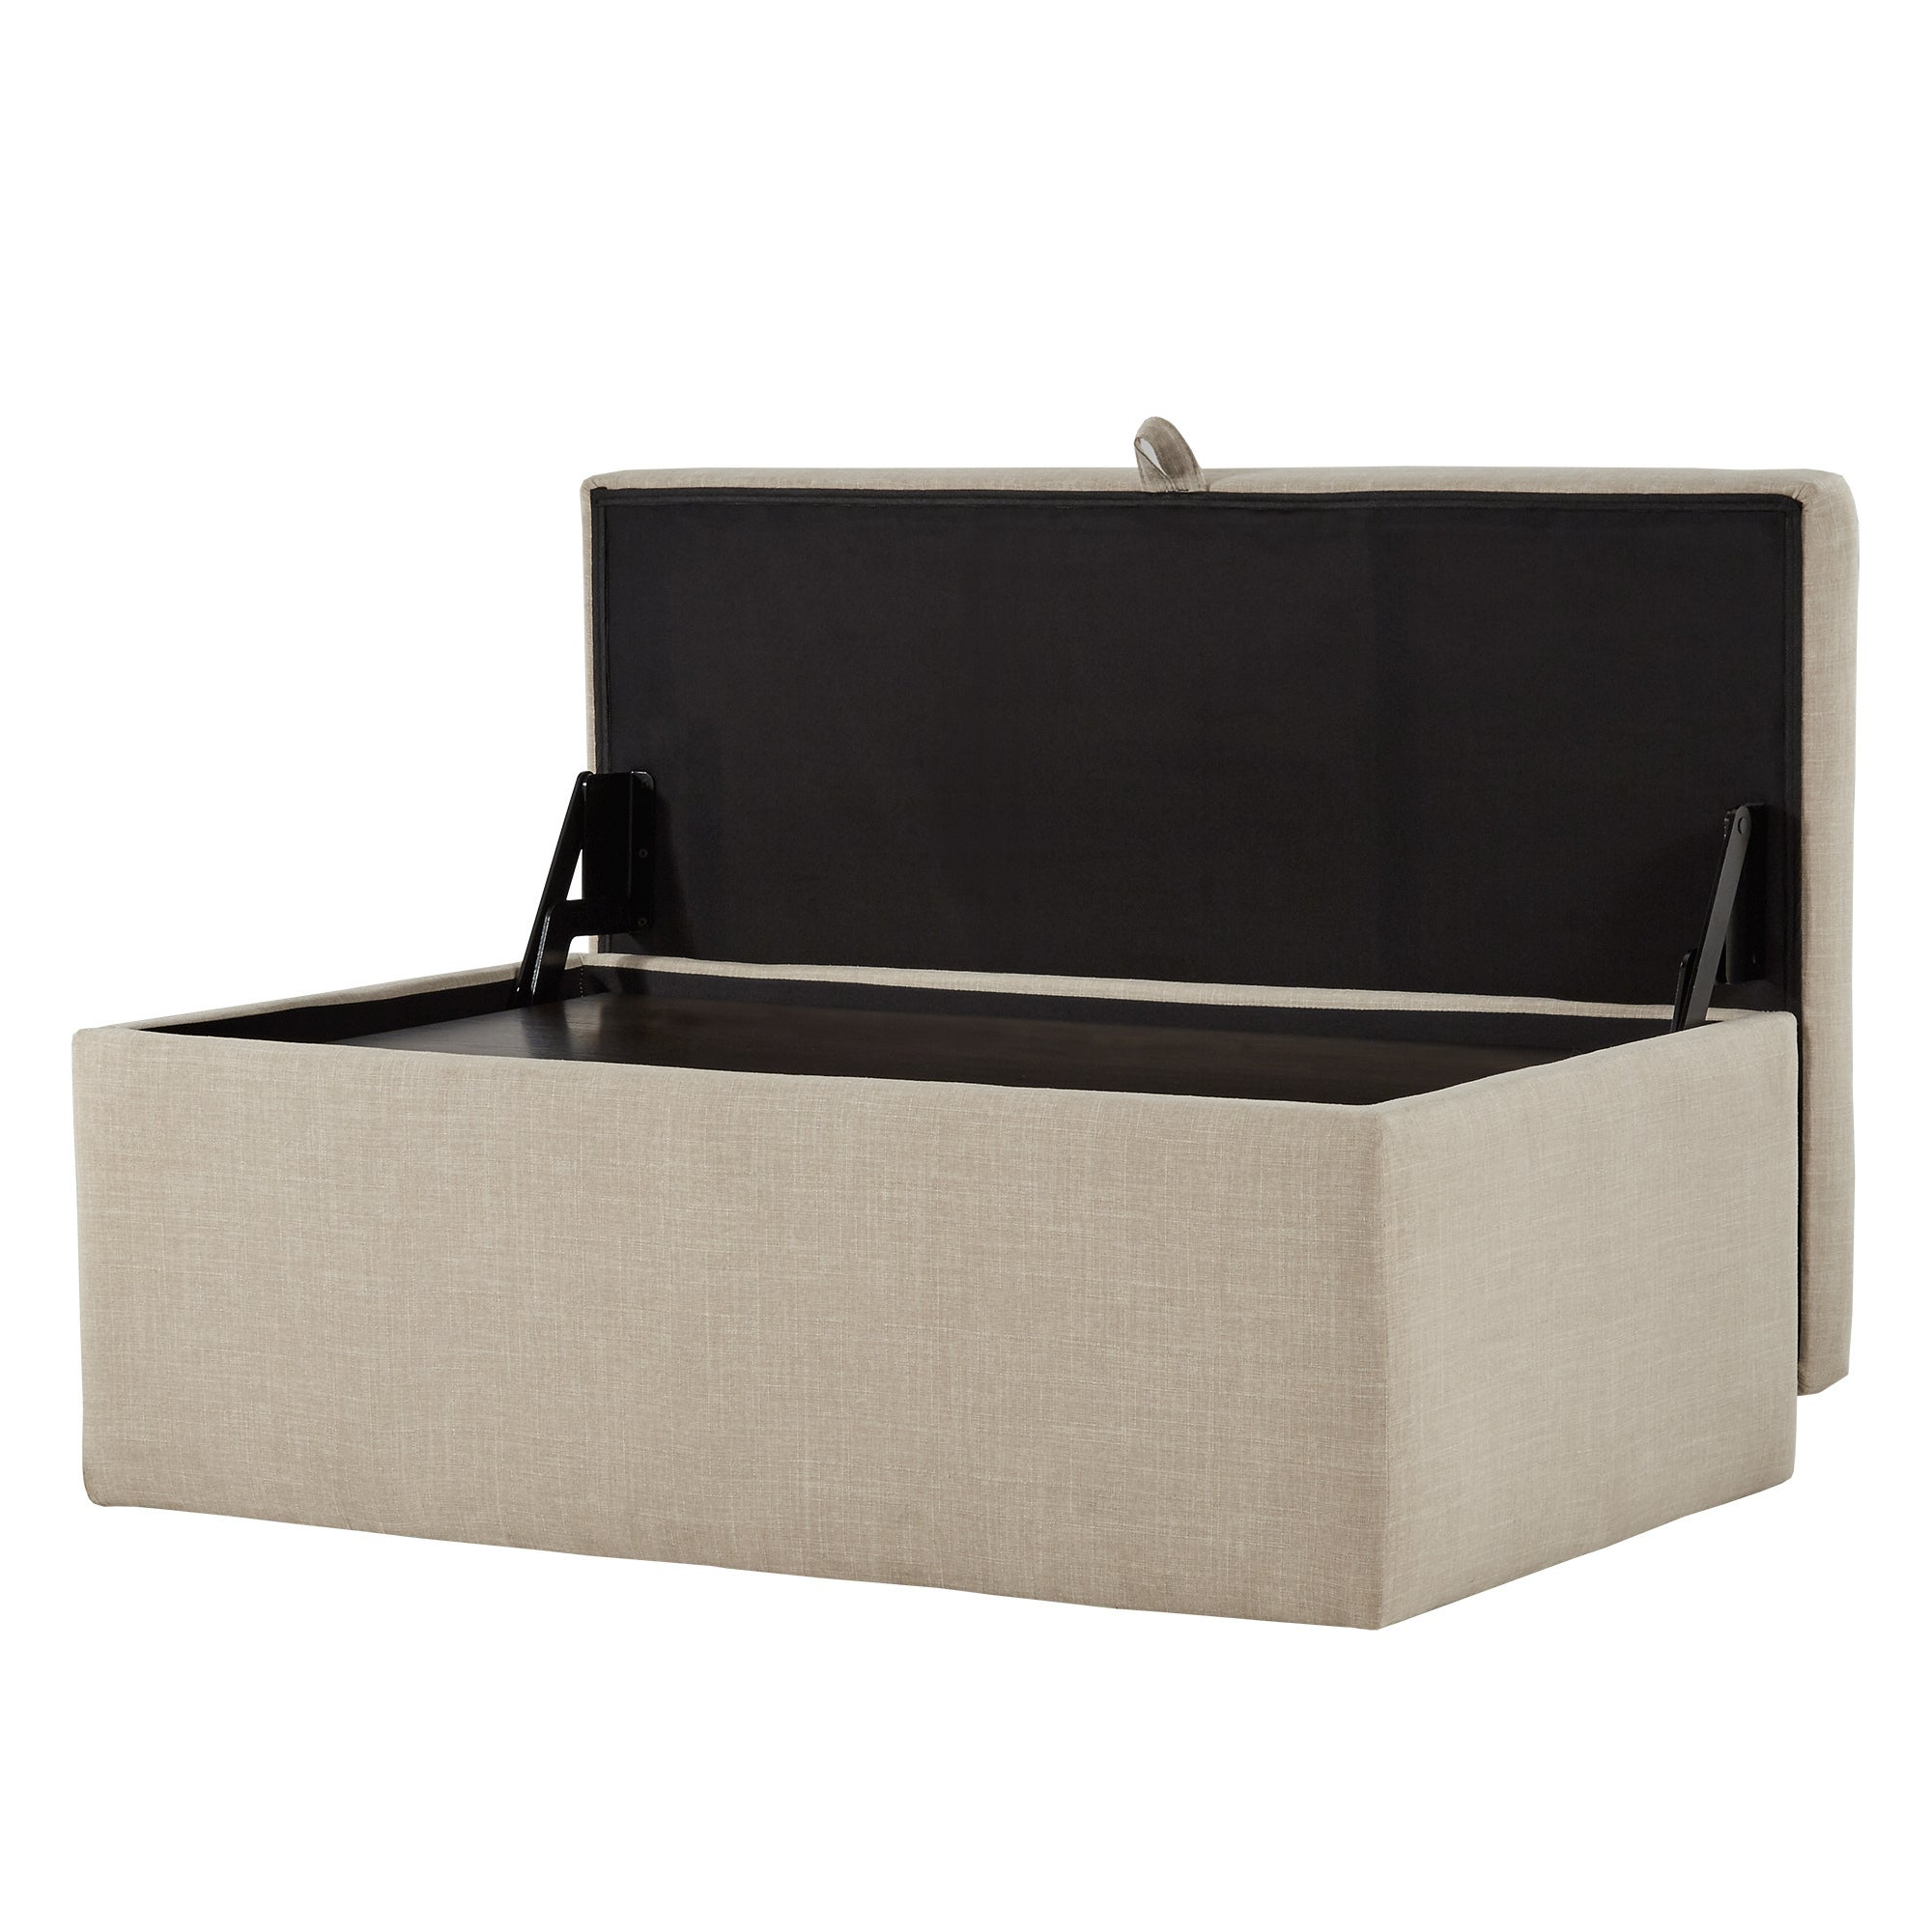 Landen Lift Top Upholstered Storage Ottoman Coffee Table By Inspire Q On Free Shipping Today 22377961